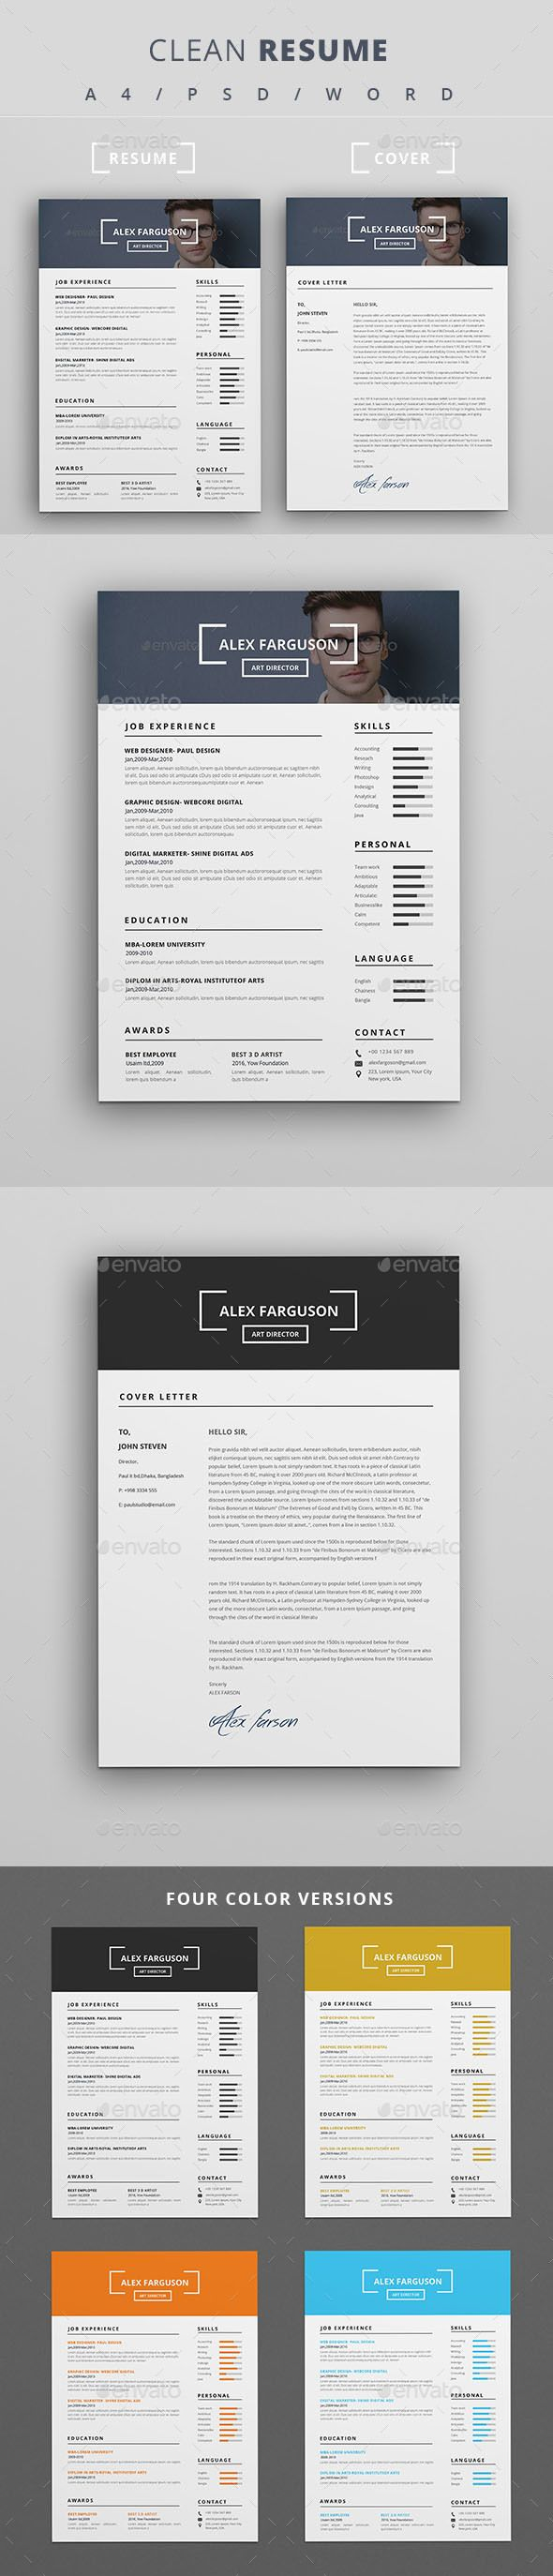 7 resume design concepts which get you